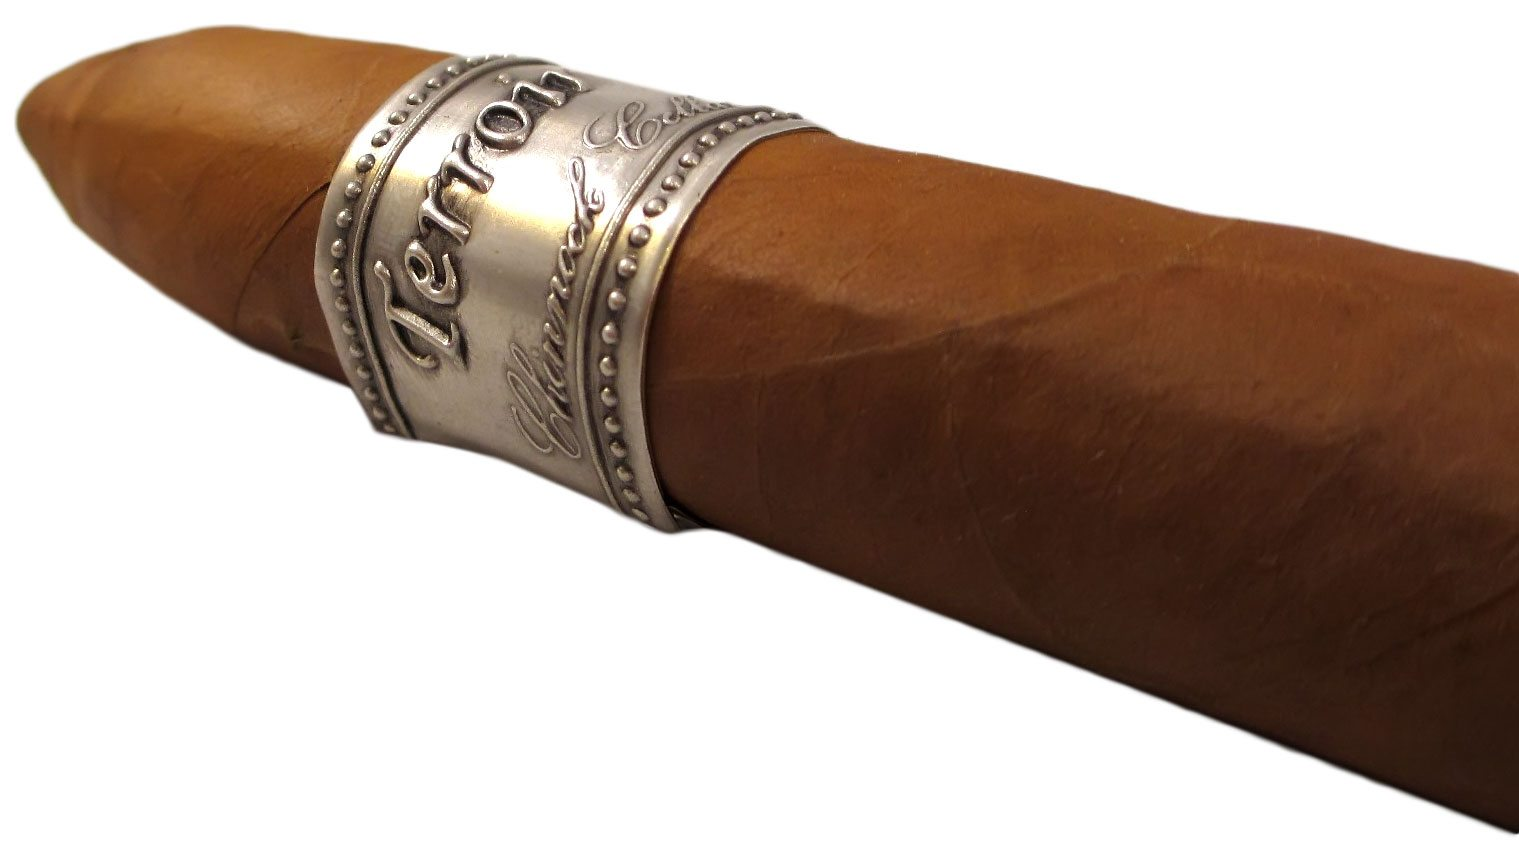 Blind Cigar Review: Chinnock Cellars | Terroir Torpedo